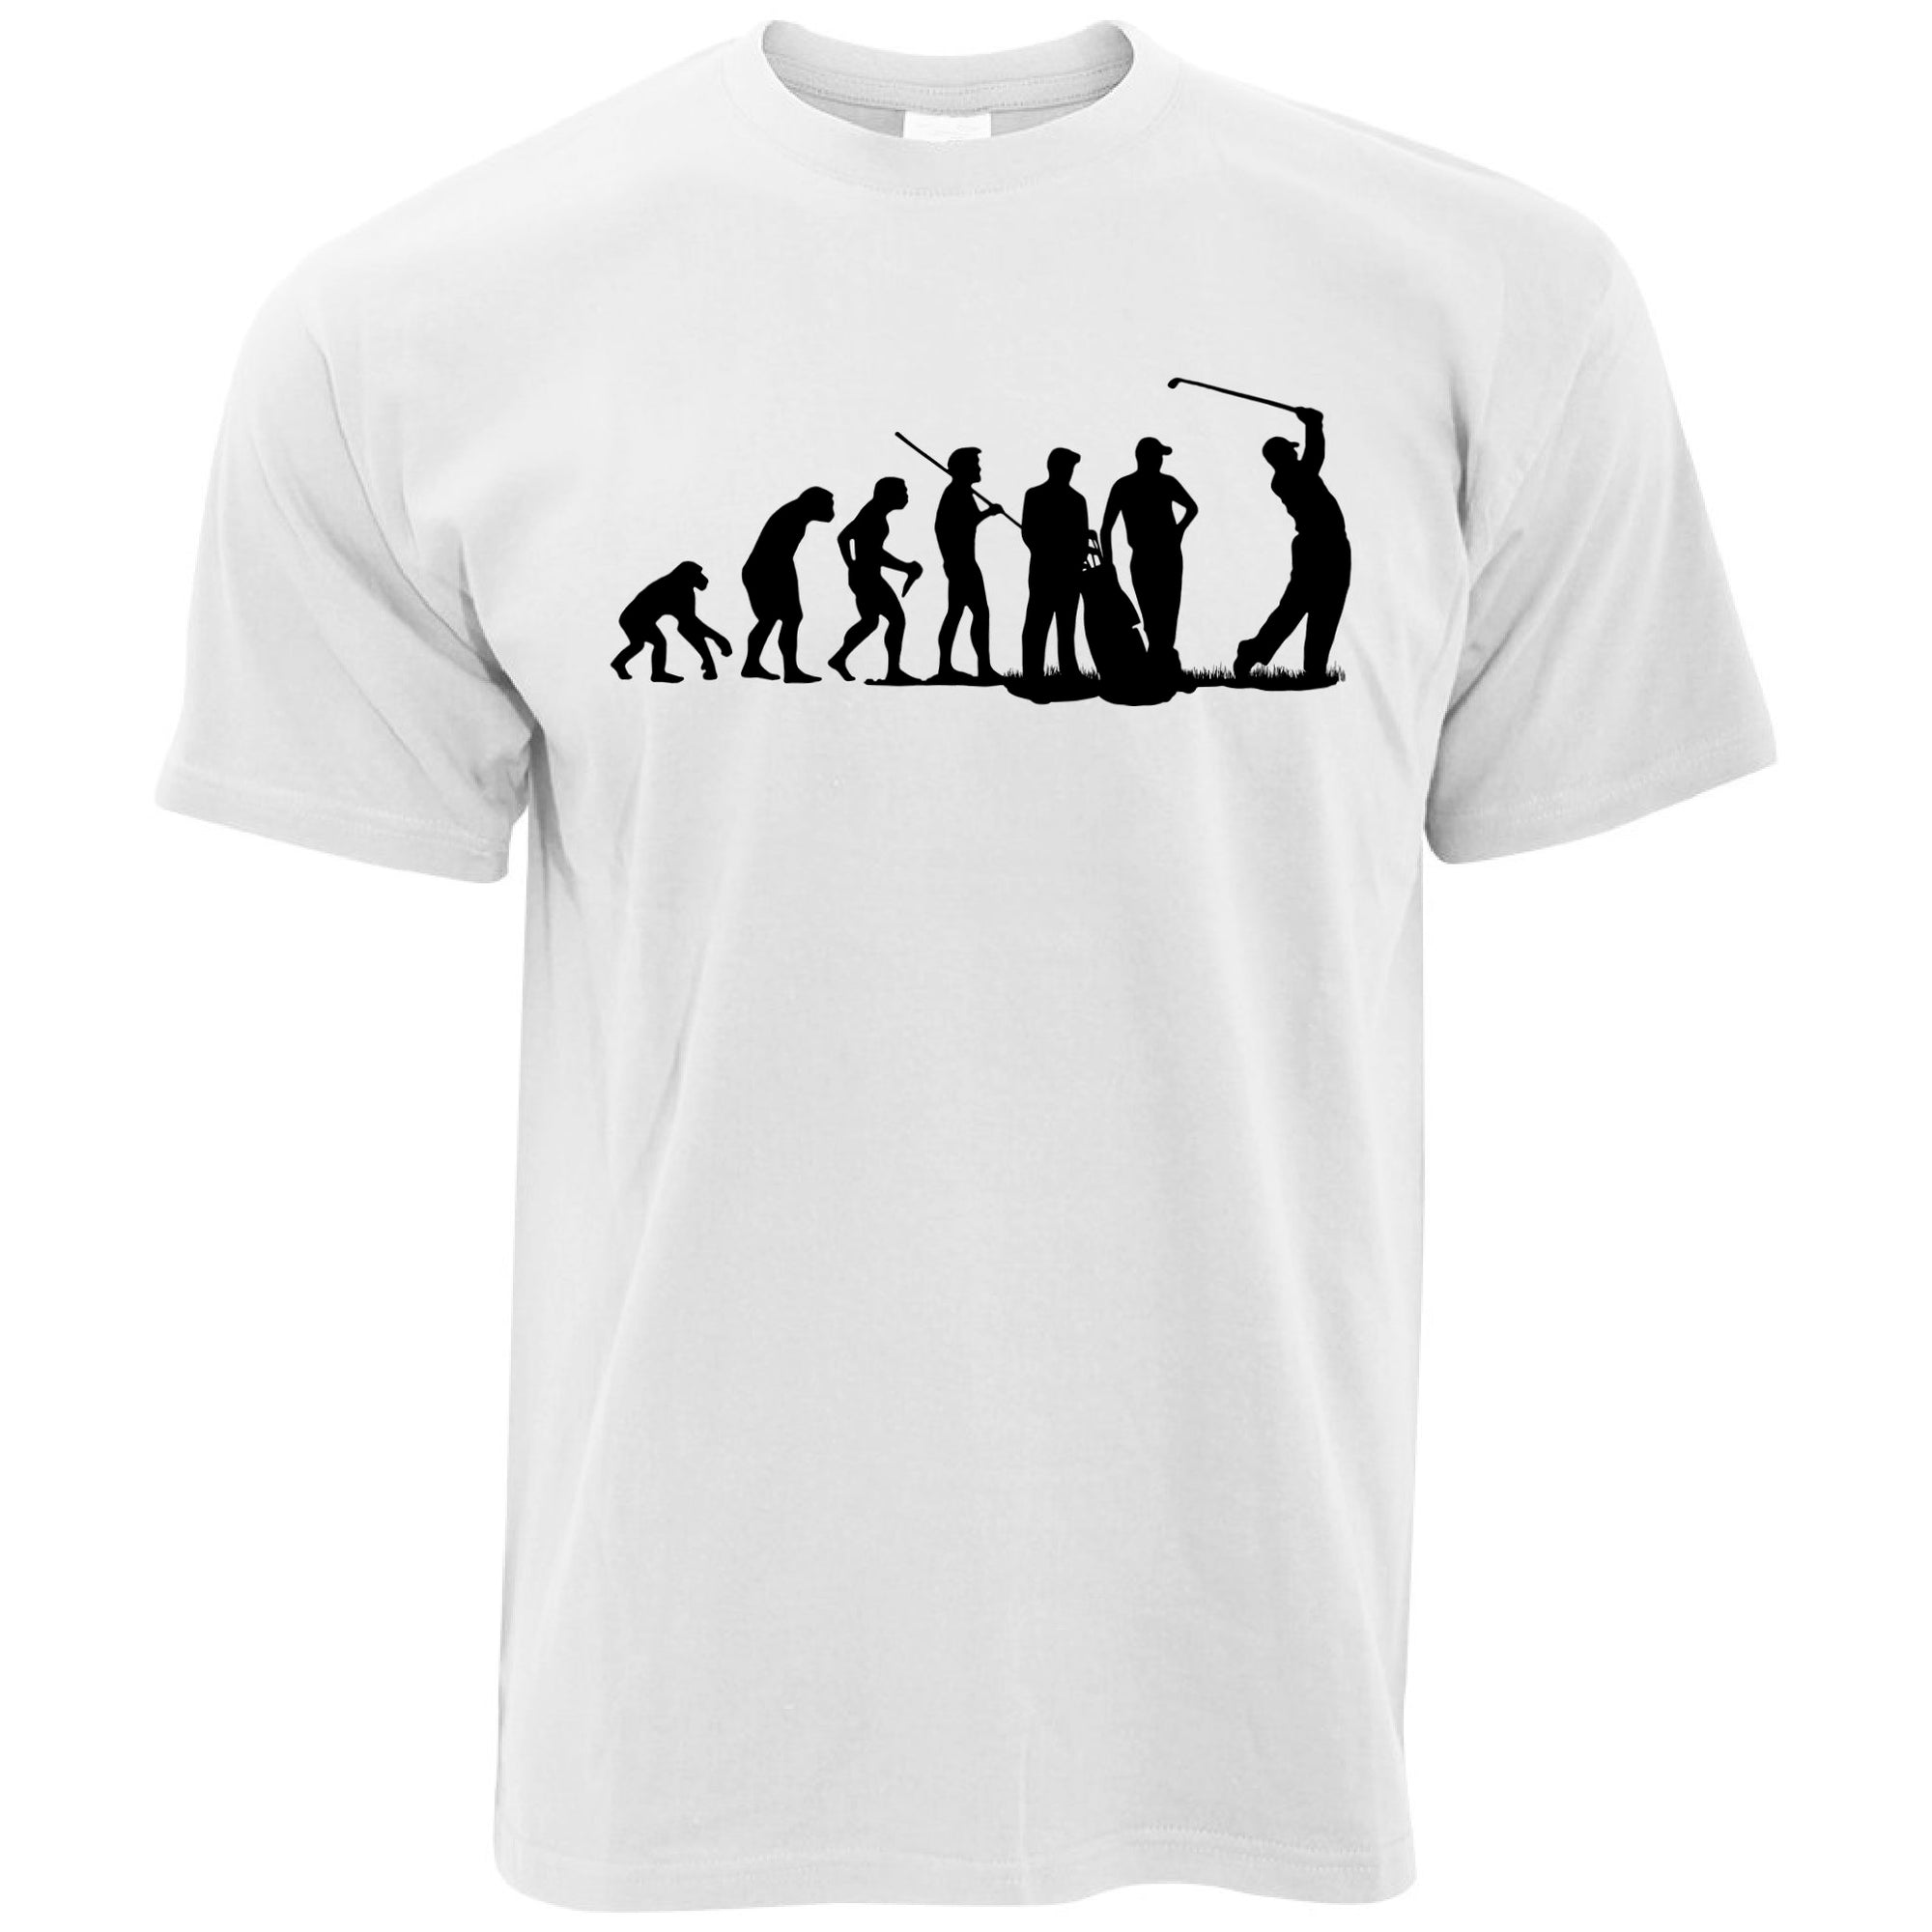 Sports T Shirt The Evolution Of A Golfer